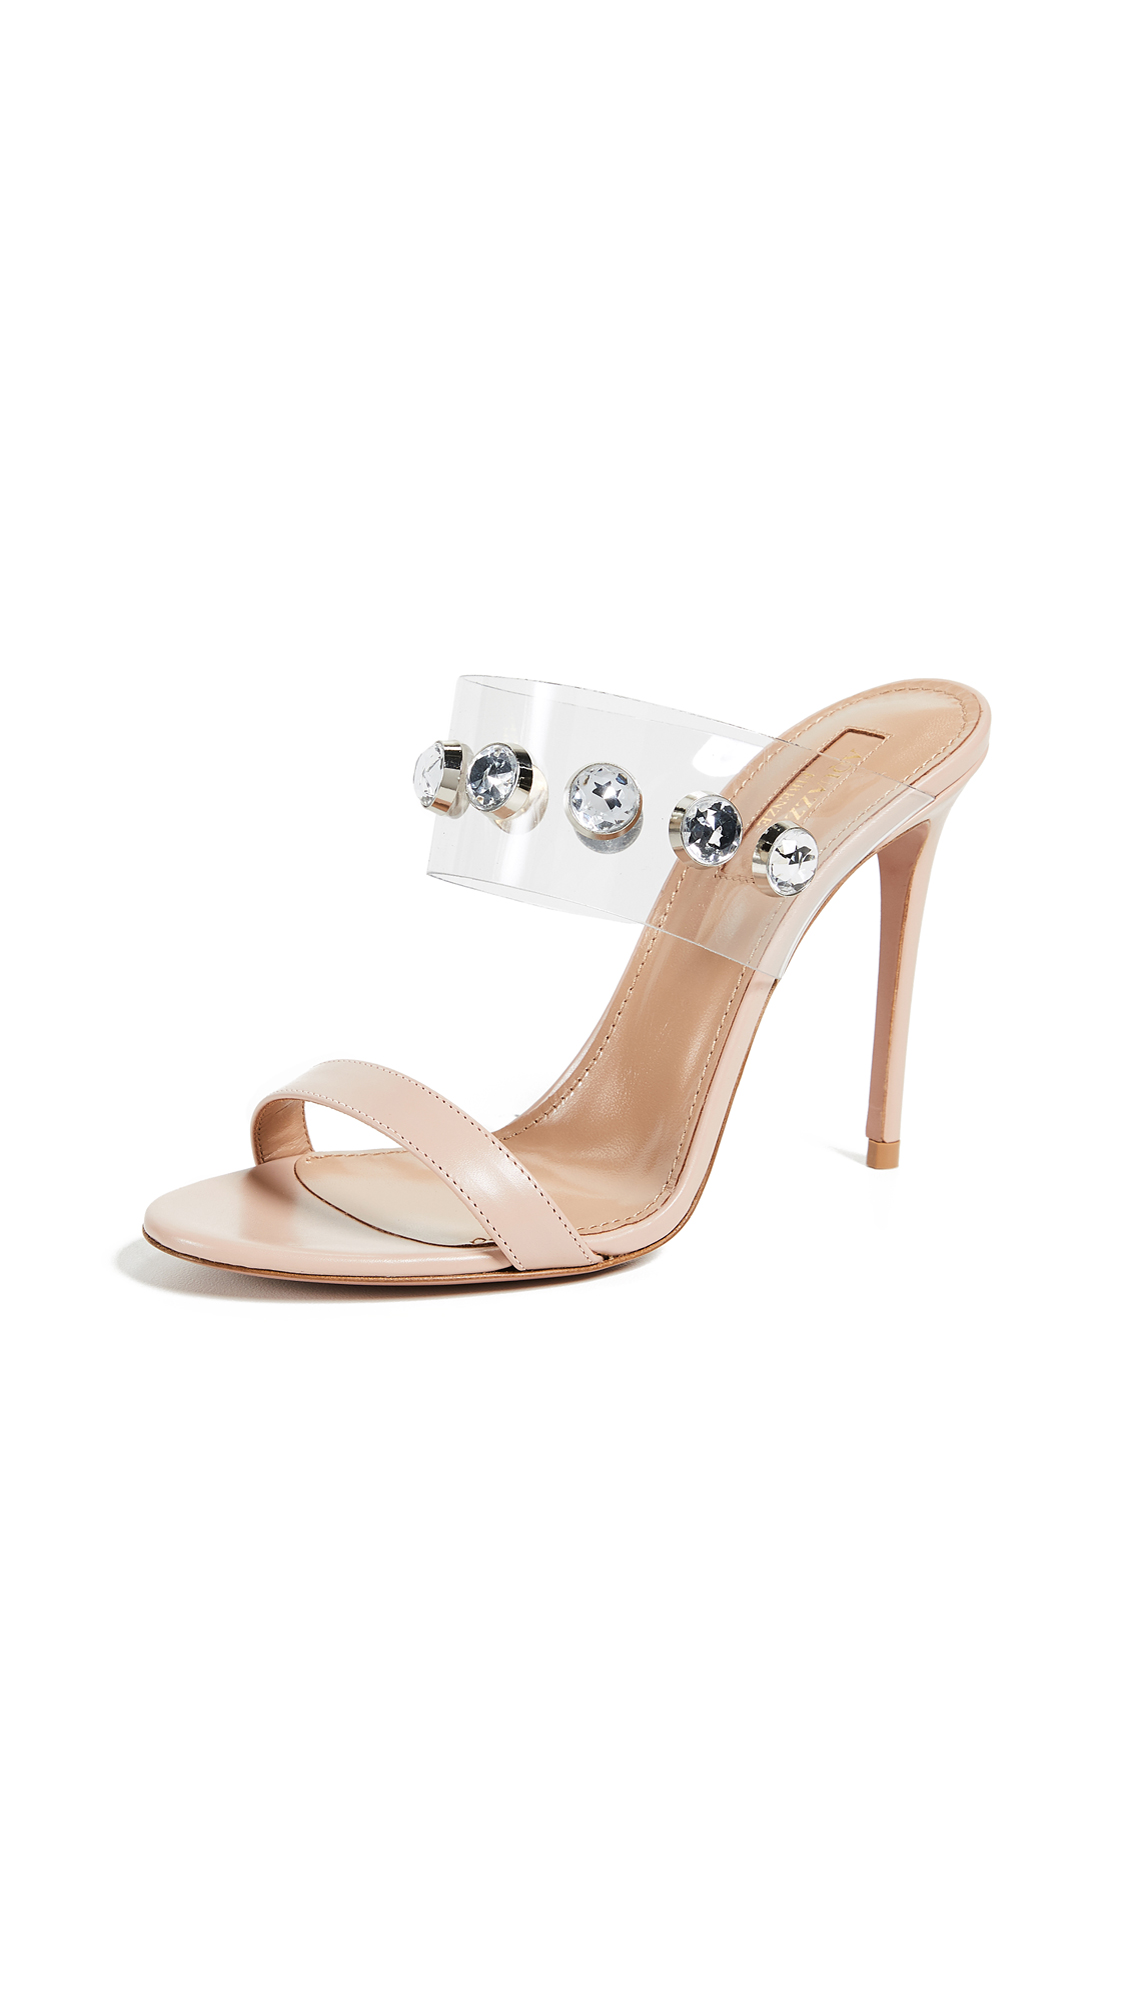 Aquazzura Galaxy 105mm Sandals - Powder Pink